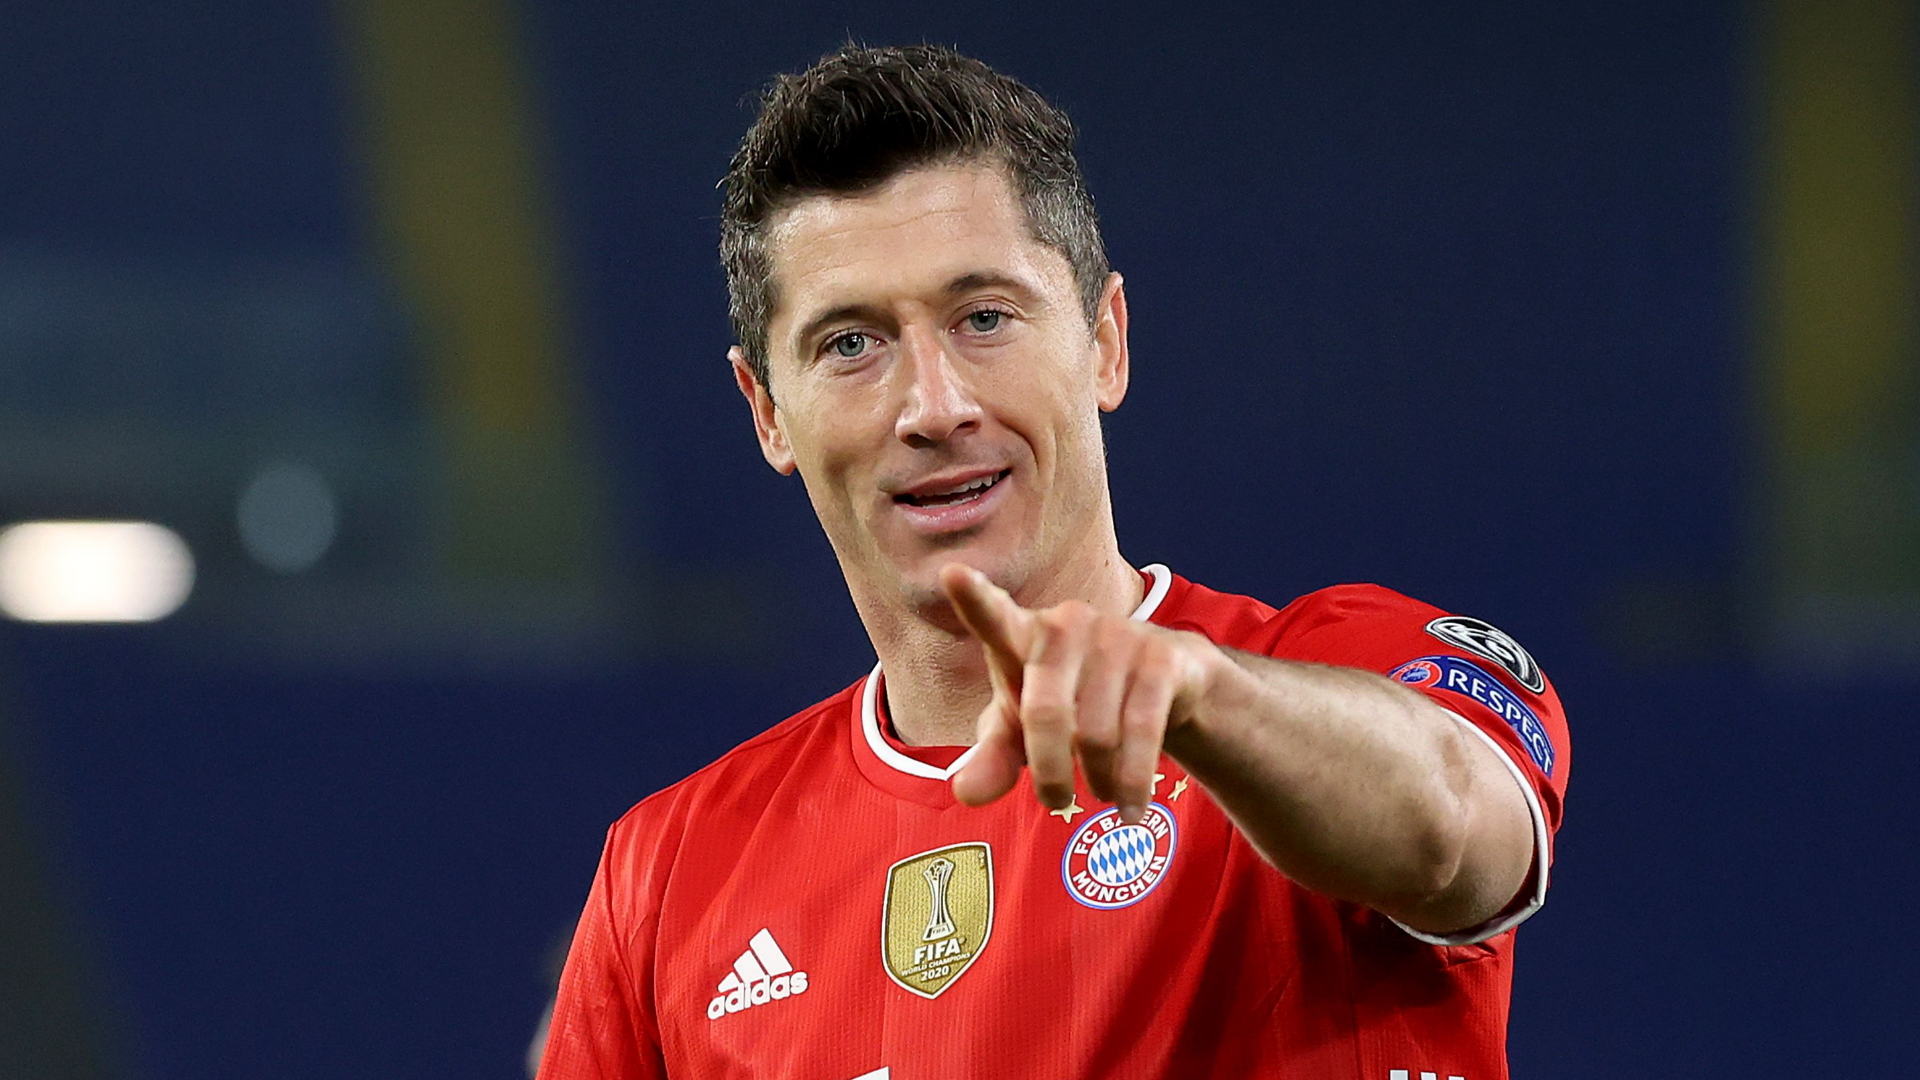 Lewandowski reacts to talk of Serie A switch as Bayern Munich future is questioned